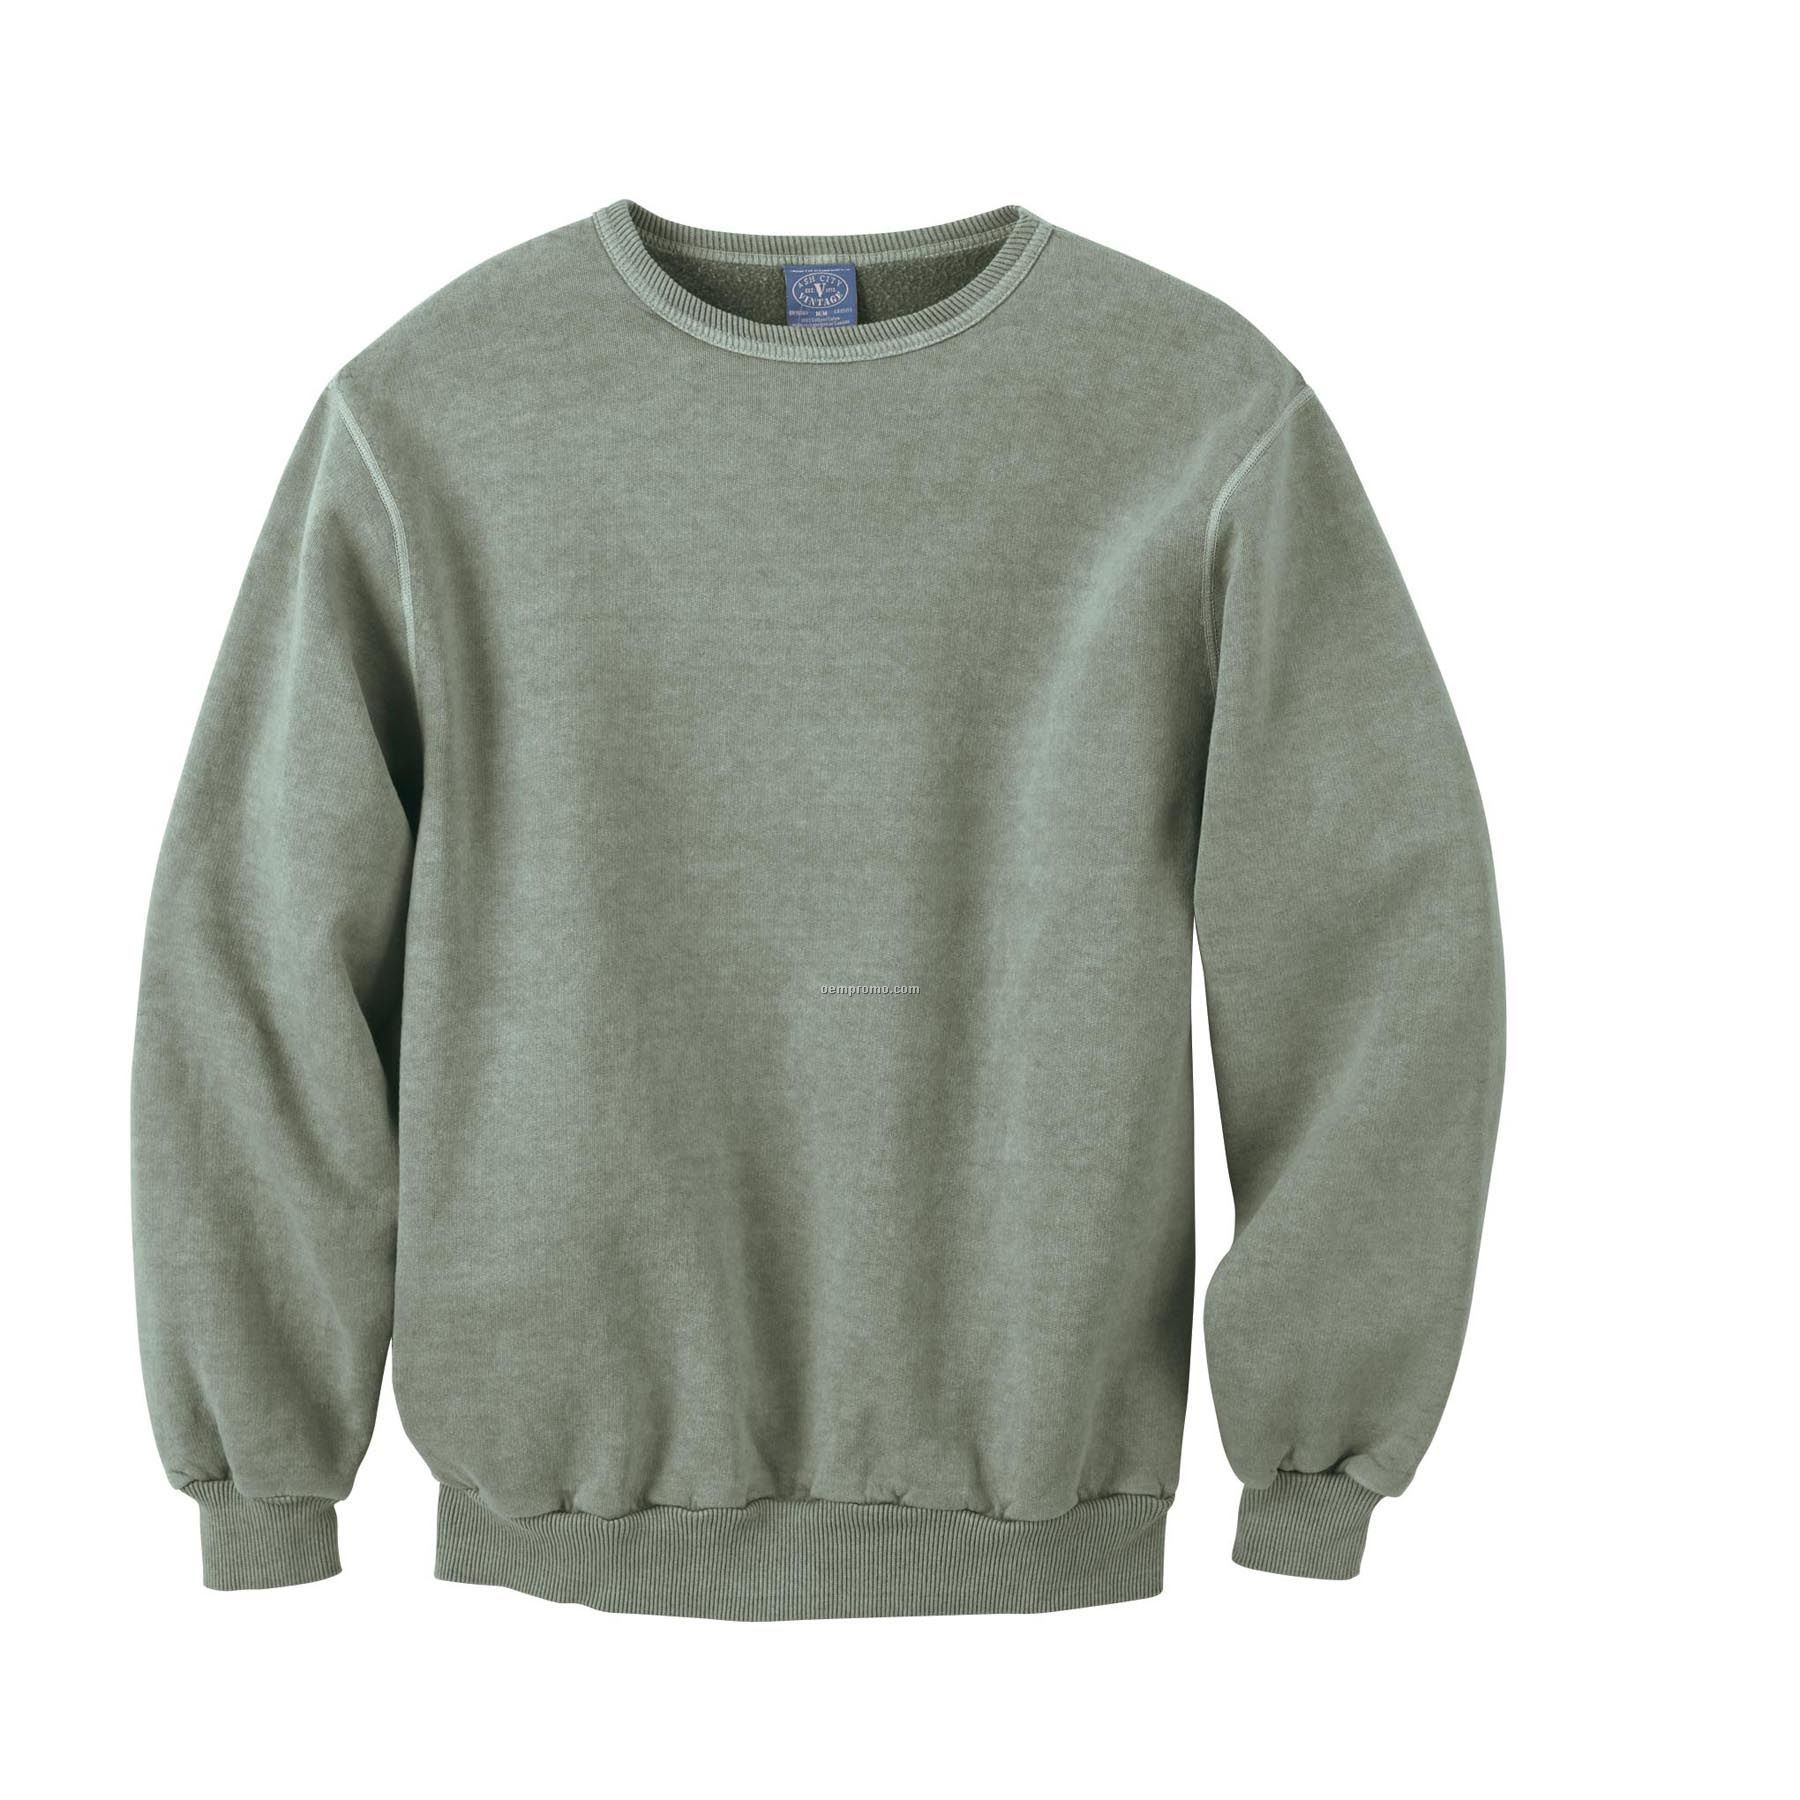 Shop a great selection of Sweatshirts for Men at Nordstrom Rack. Find designer Sweatshirts for Men up to 70% off and get free shipping on orders over $